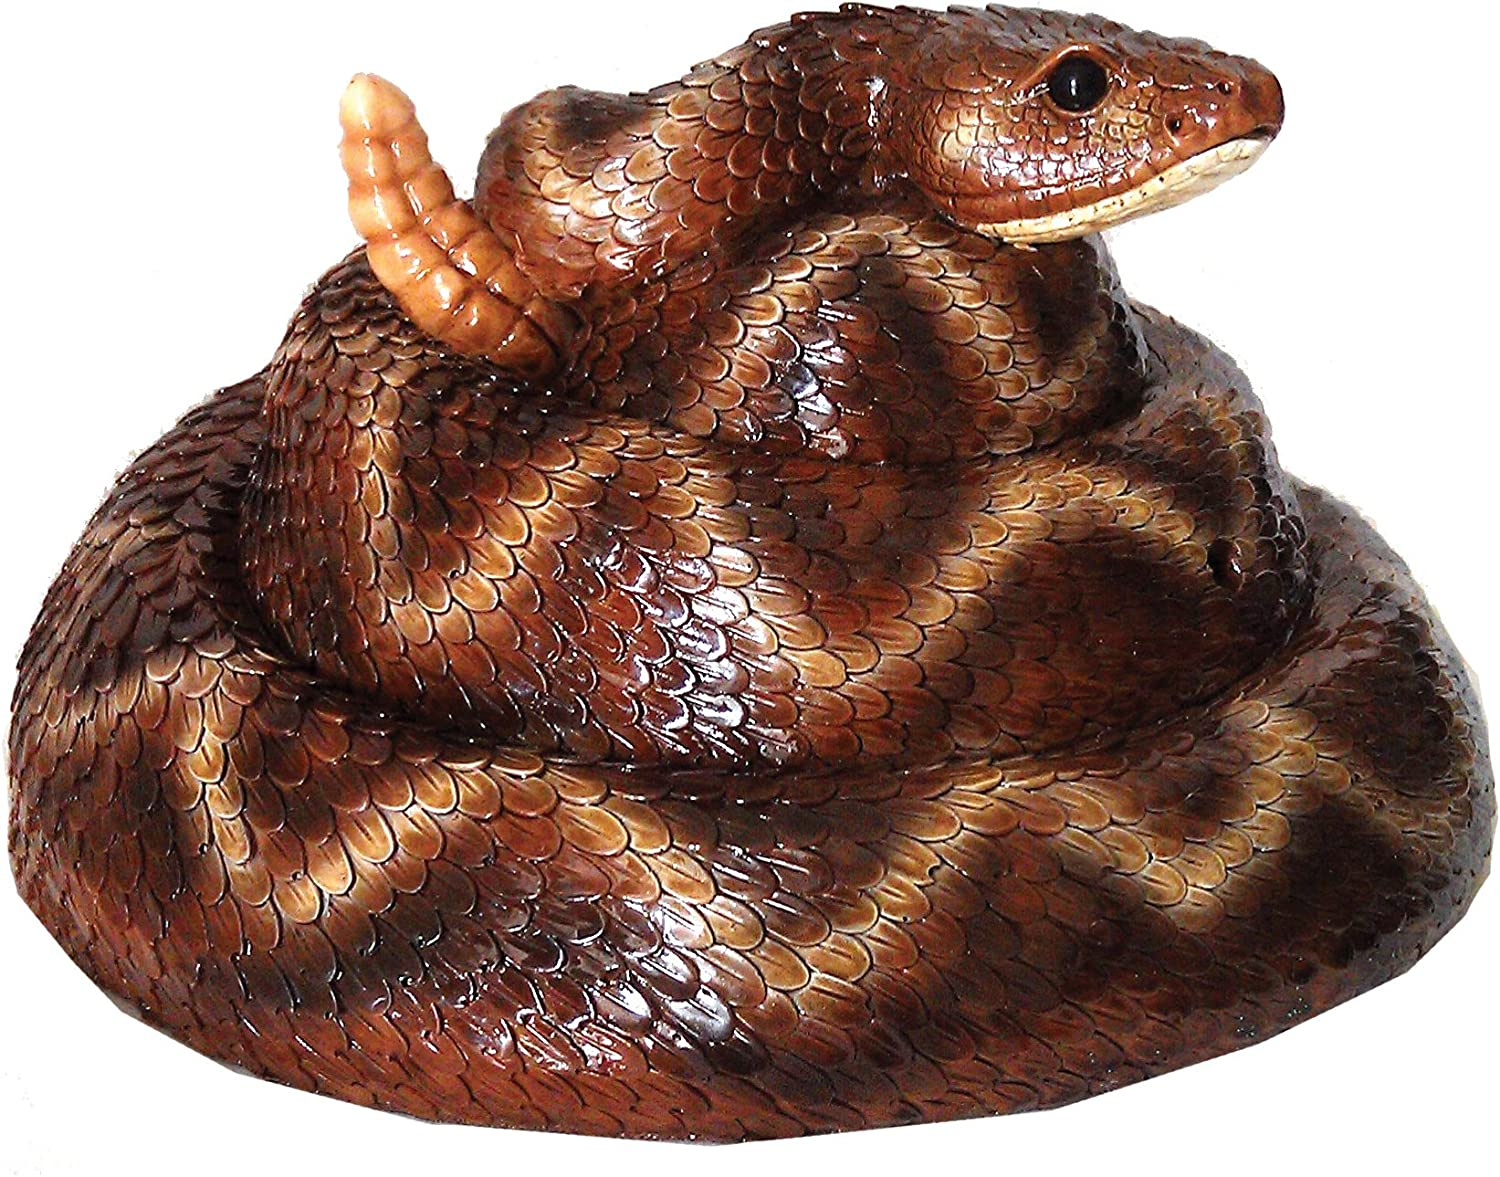 Michael Carr Designs Rattler Snake with Motion Activated Rattler Sound Outdoor Snake Figurine for Gardens, patios and lawns (80073)